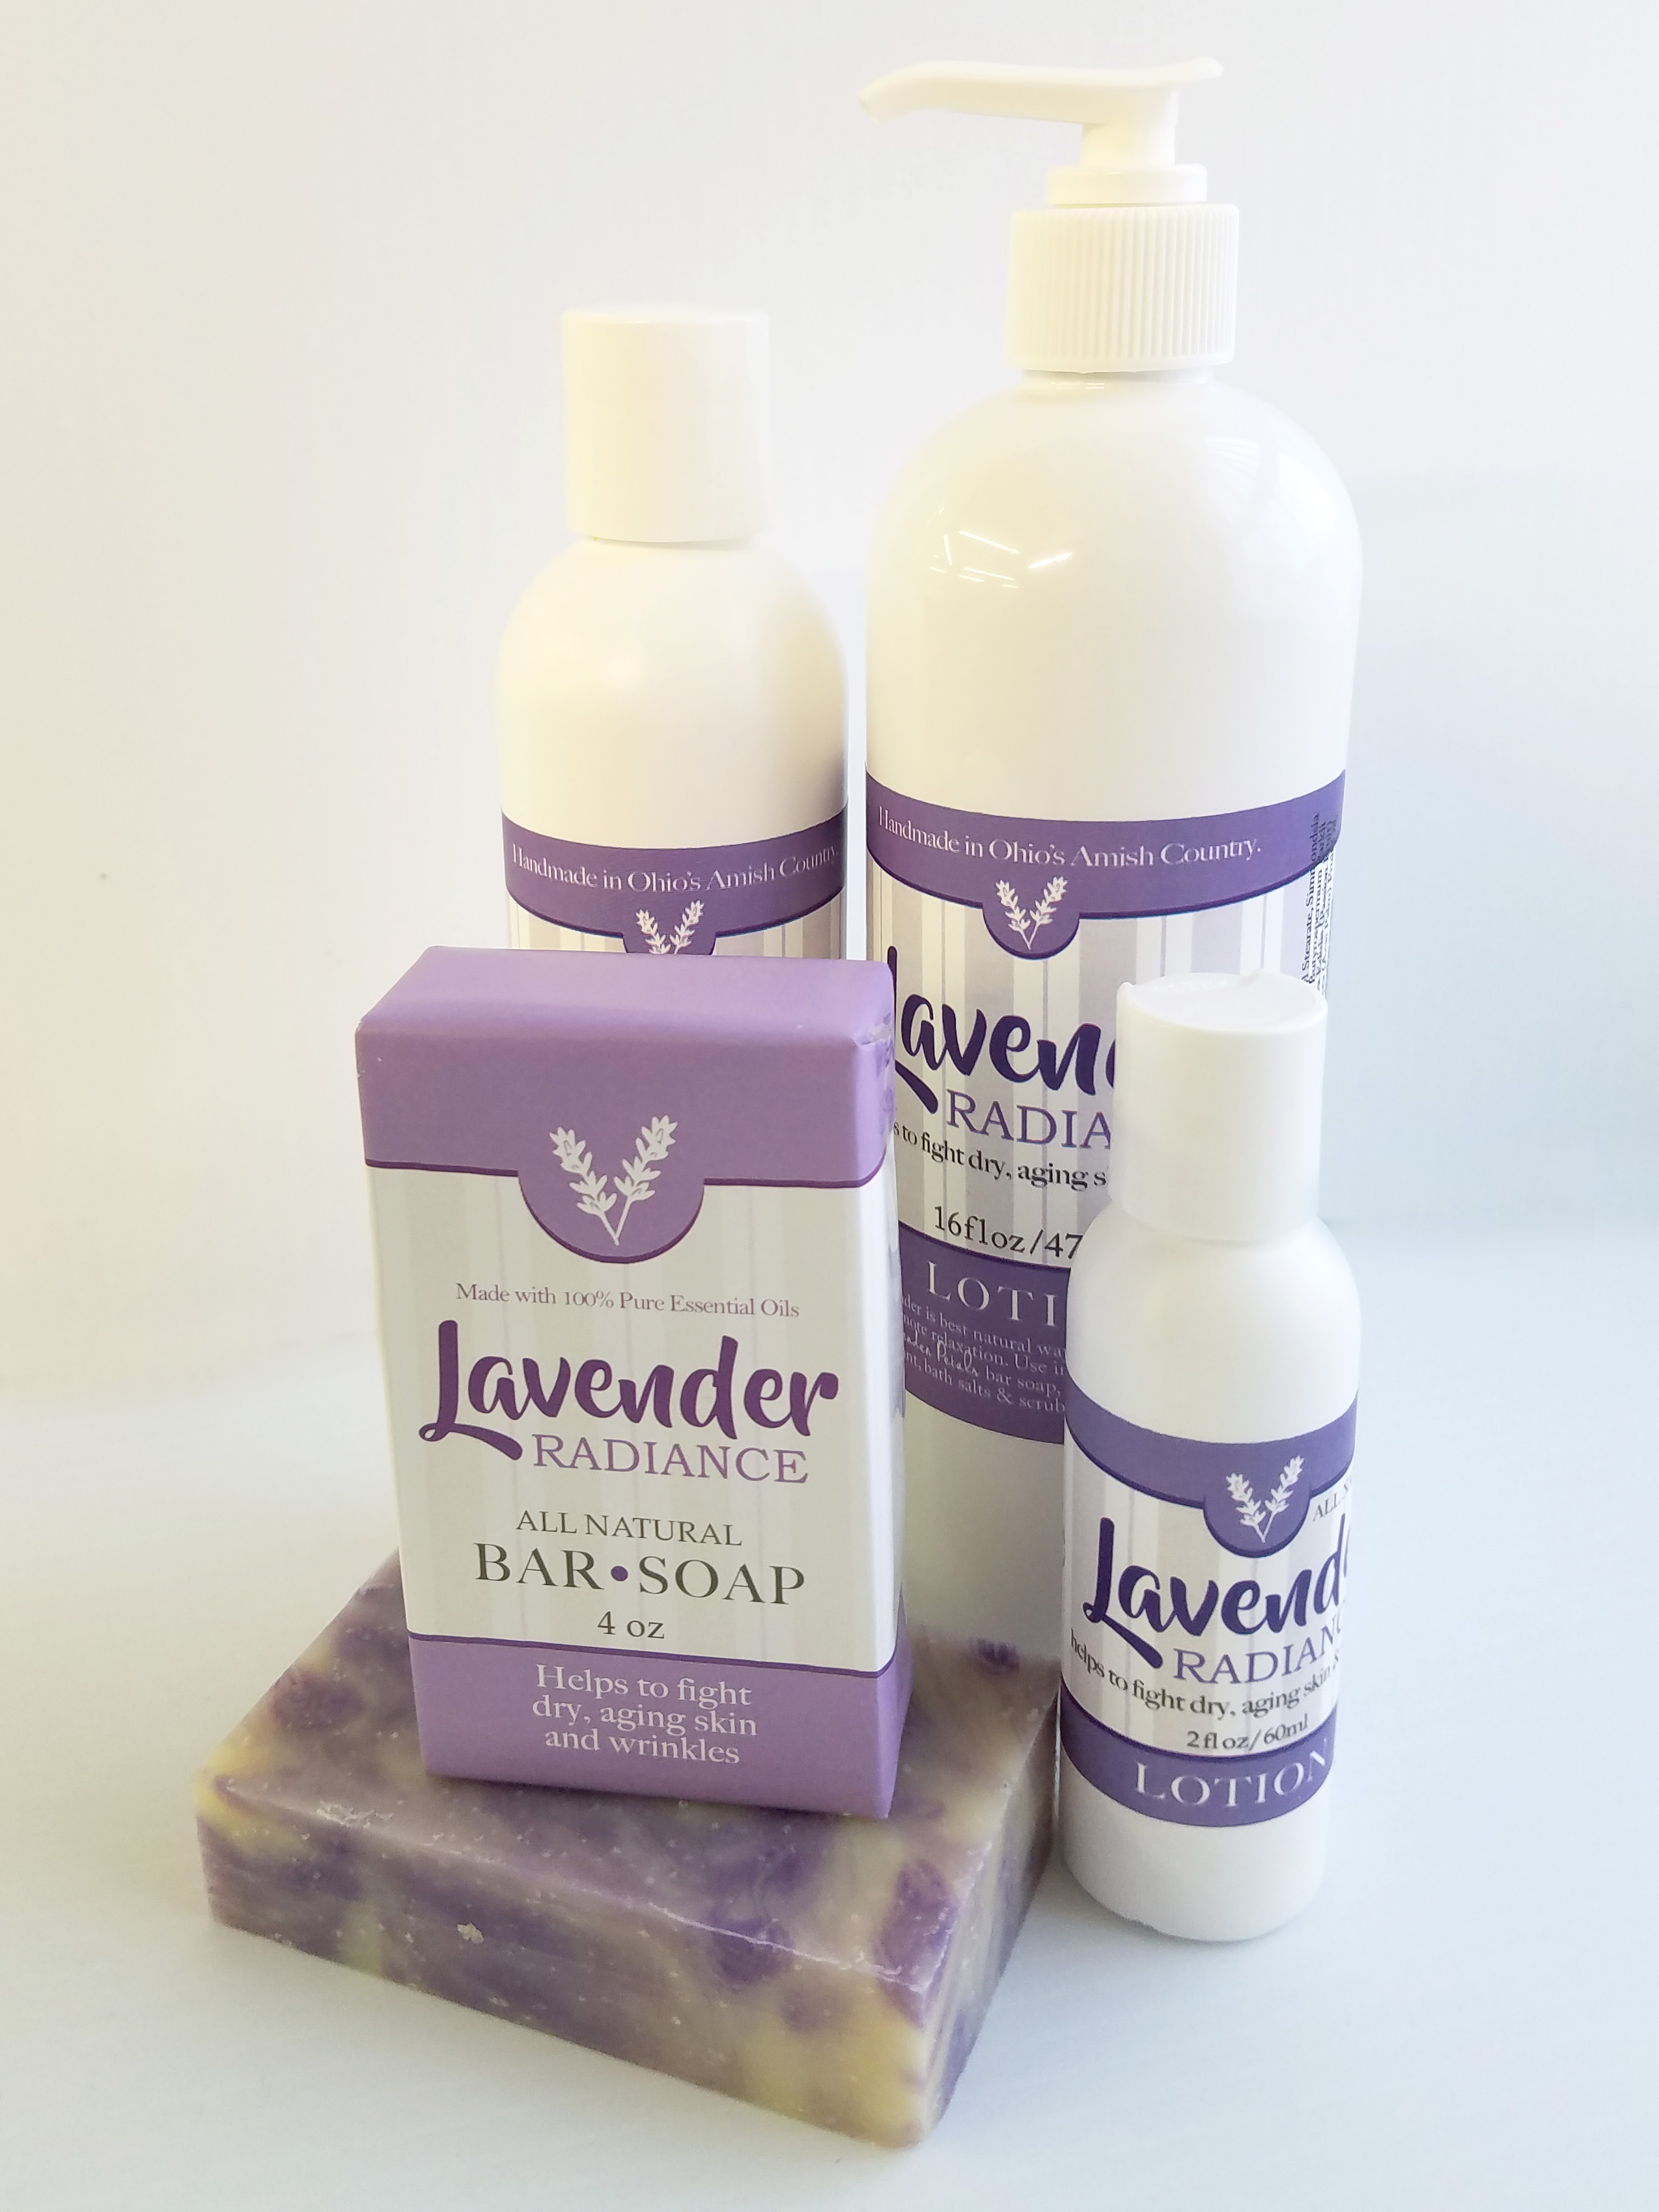 Lavender Radiance Lotion Amish Country Soap Co